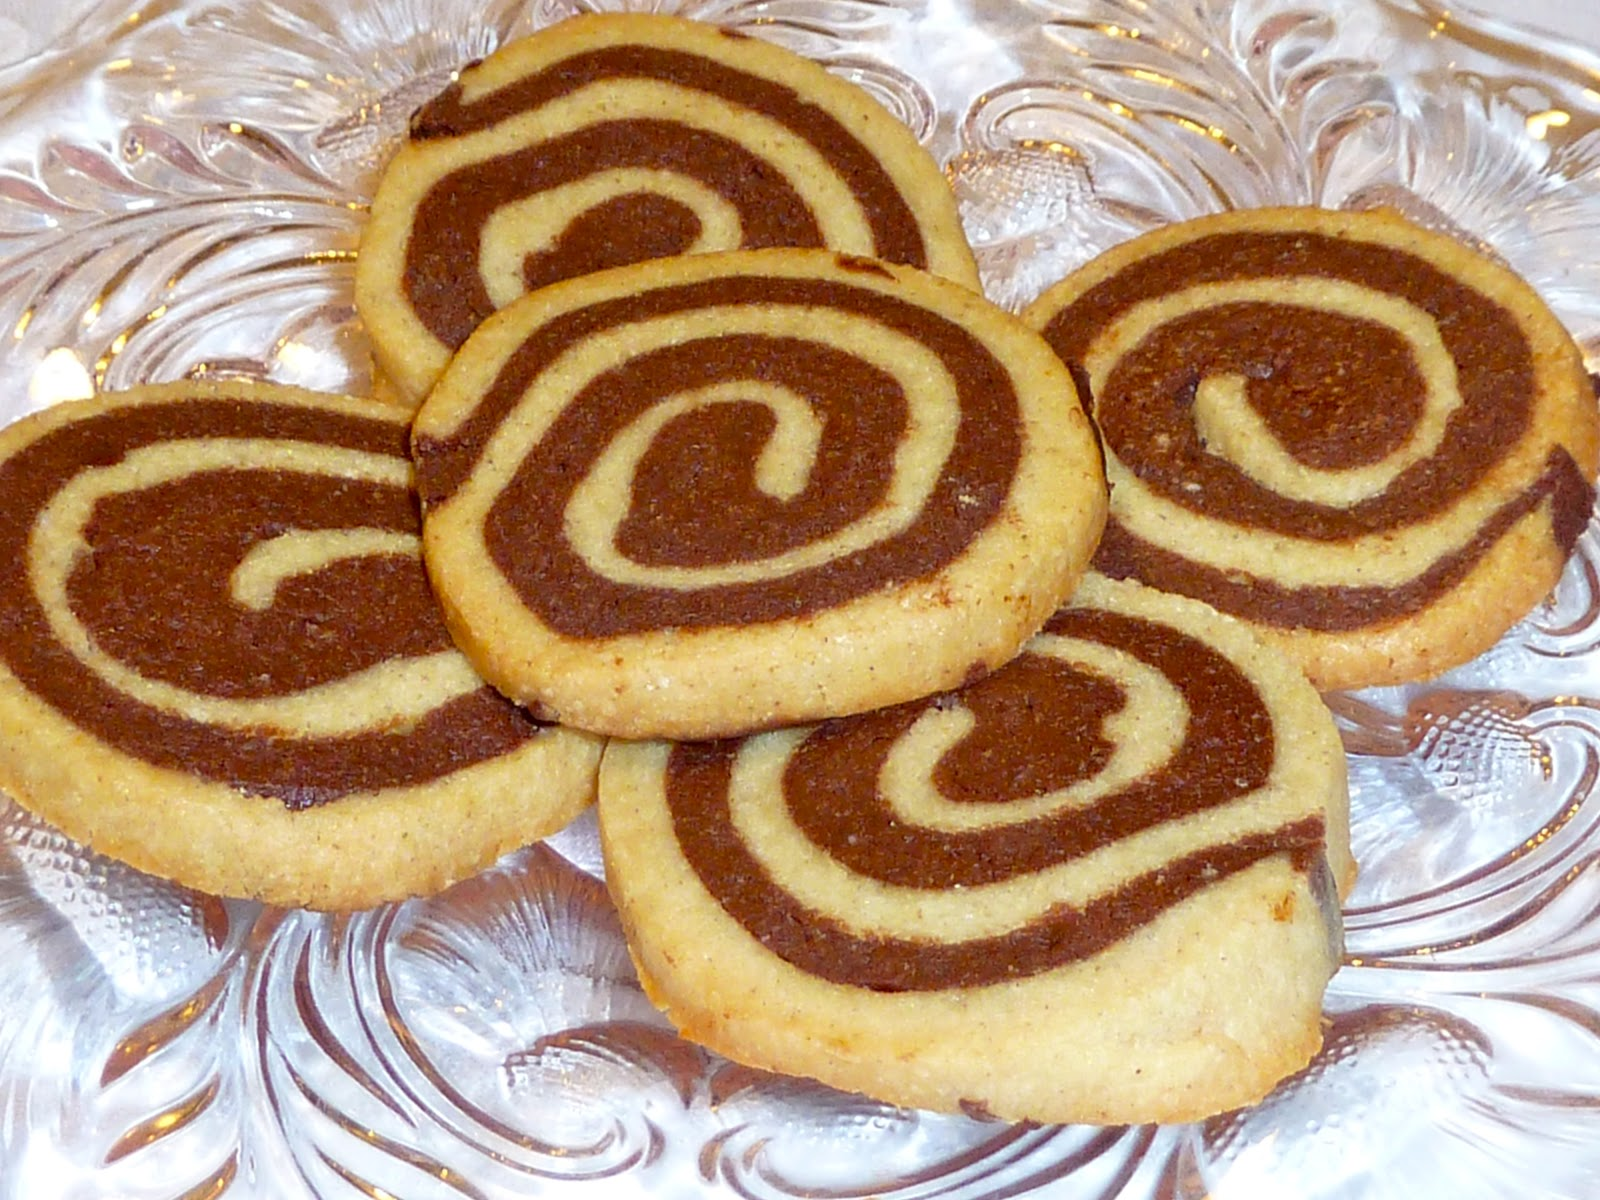 chocolate pinwheel cookies - photo #14